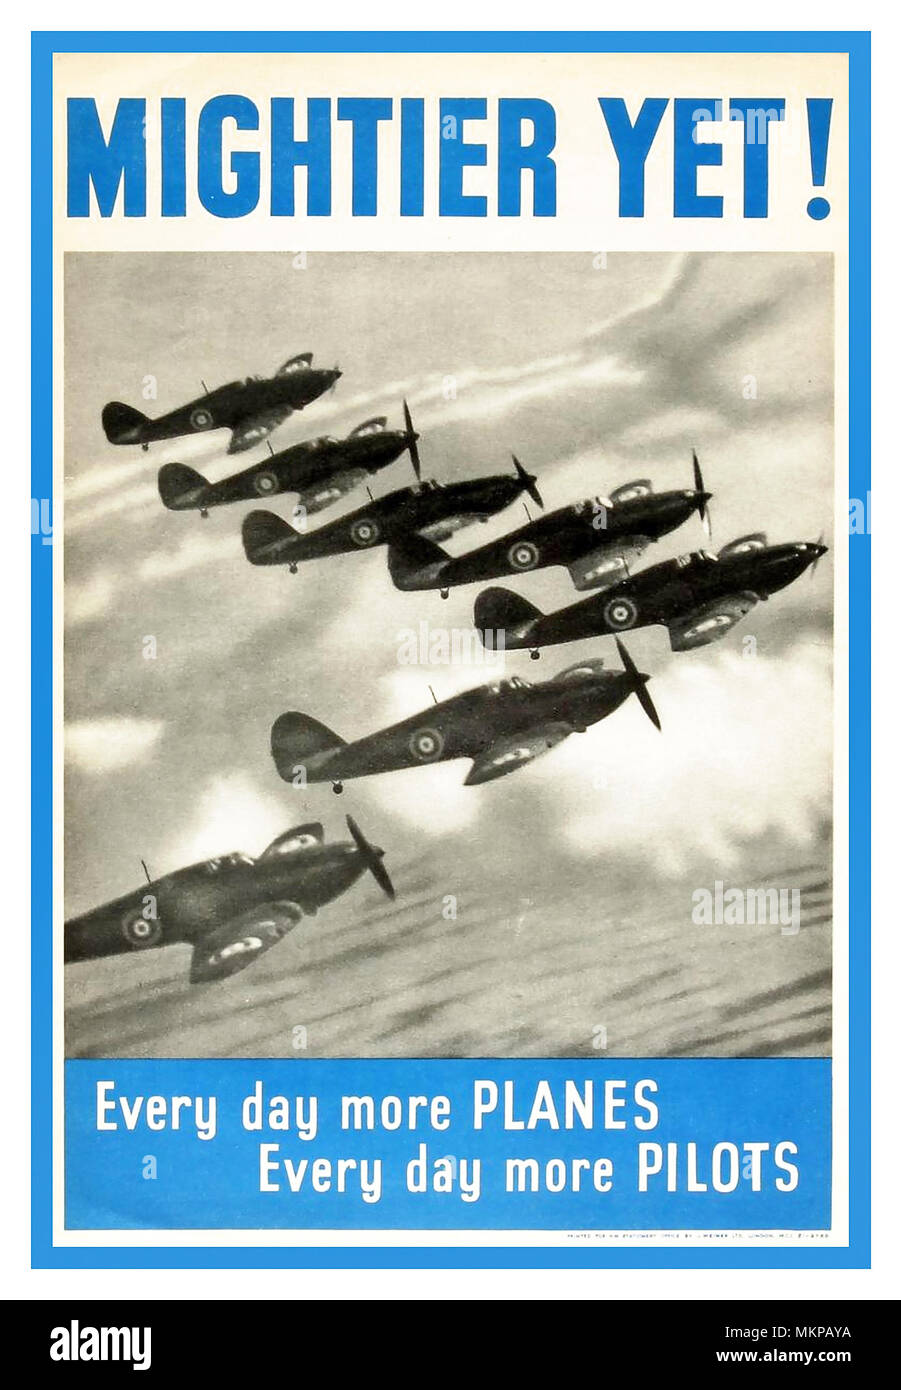 SPITFIRE POSTER 1940's WW2 RAF British Propaganda Poster  'Mightier Yet !' (Title from 'Elgar's LAND OF HOPE AND GLORY)  'Every day more PLANES'  'Every day more PILOTS'  Squadron of Spitfire Aircraft featured flying in formation..The Battle of Britain - Stock Image